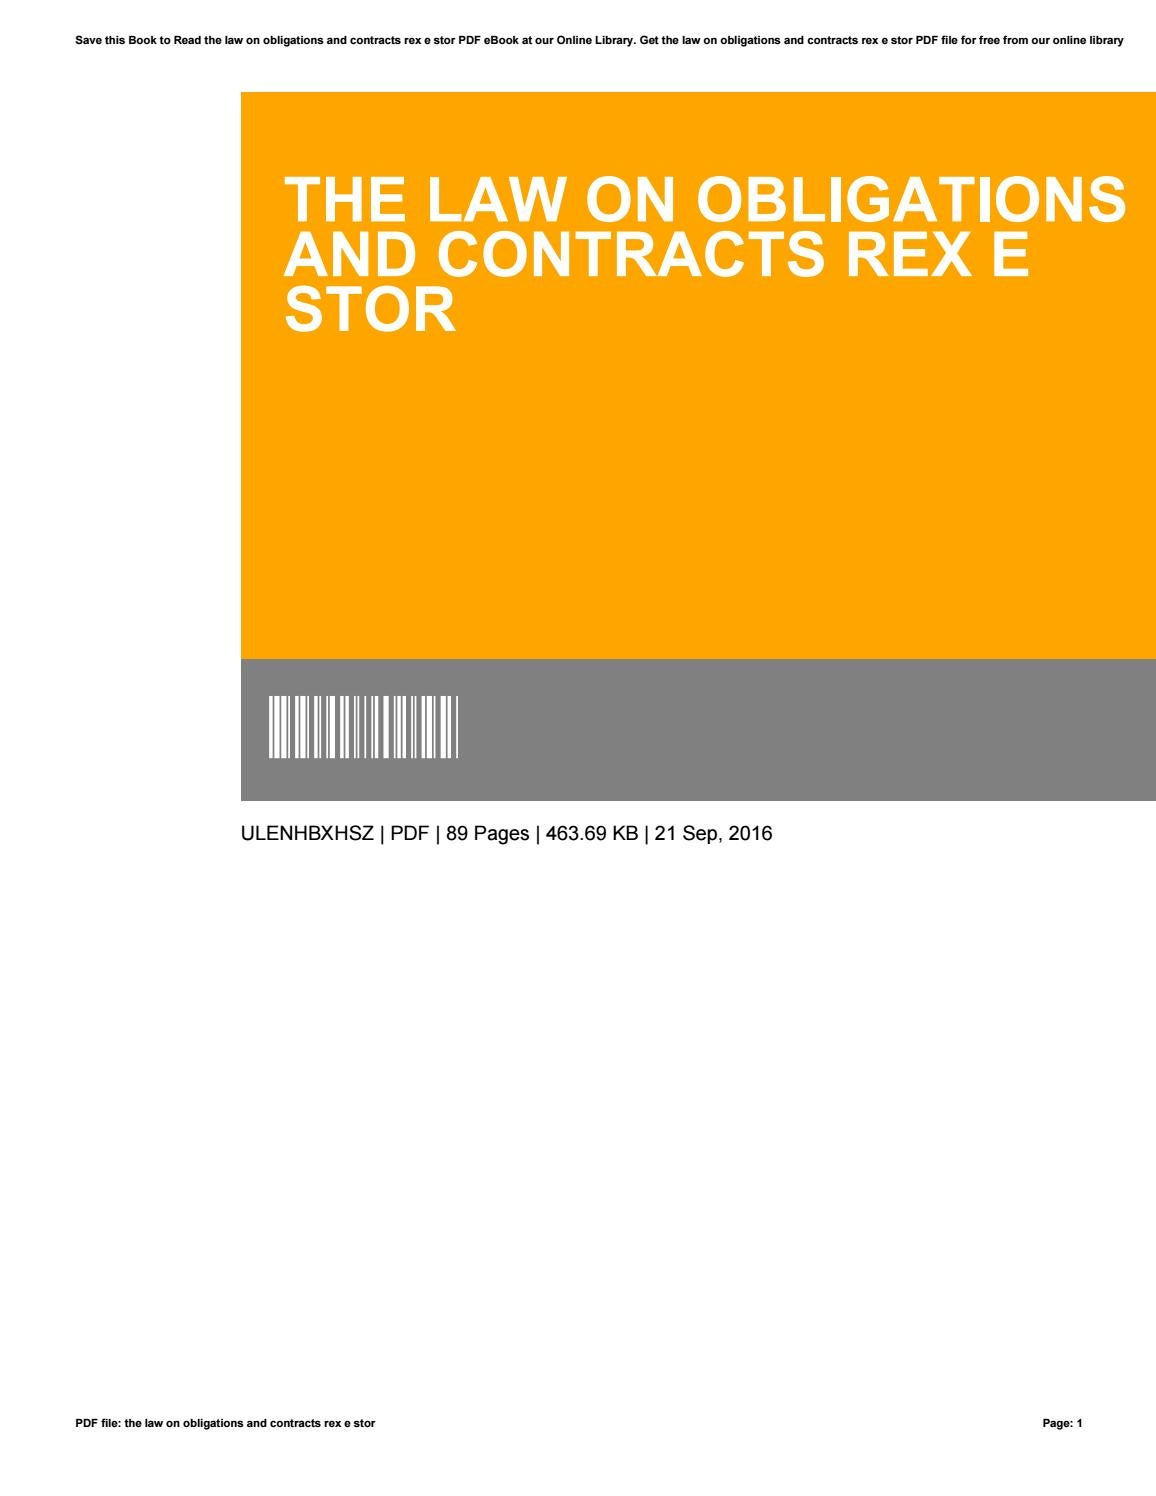 Obligations And Contracts Pdf